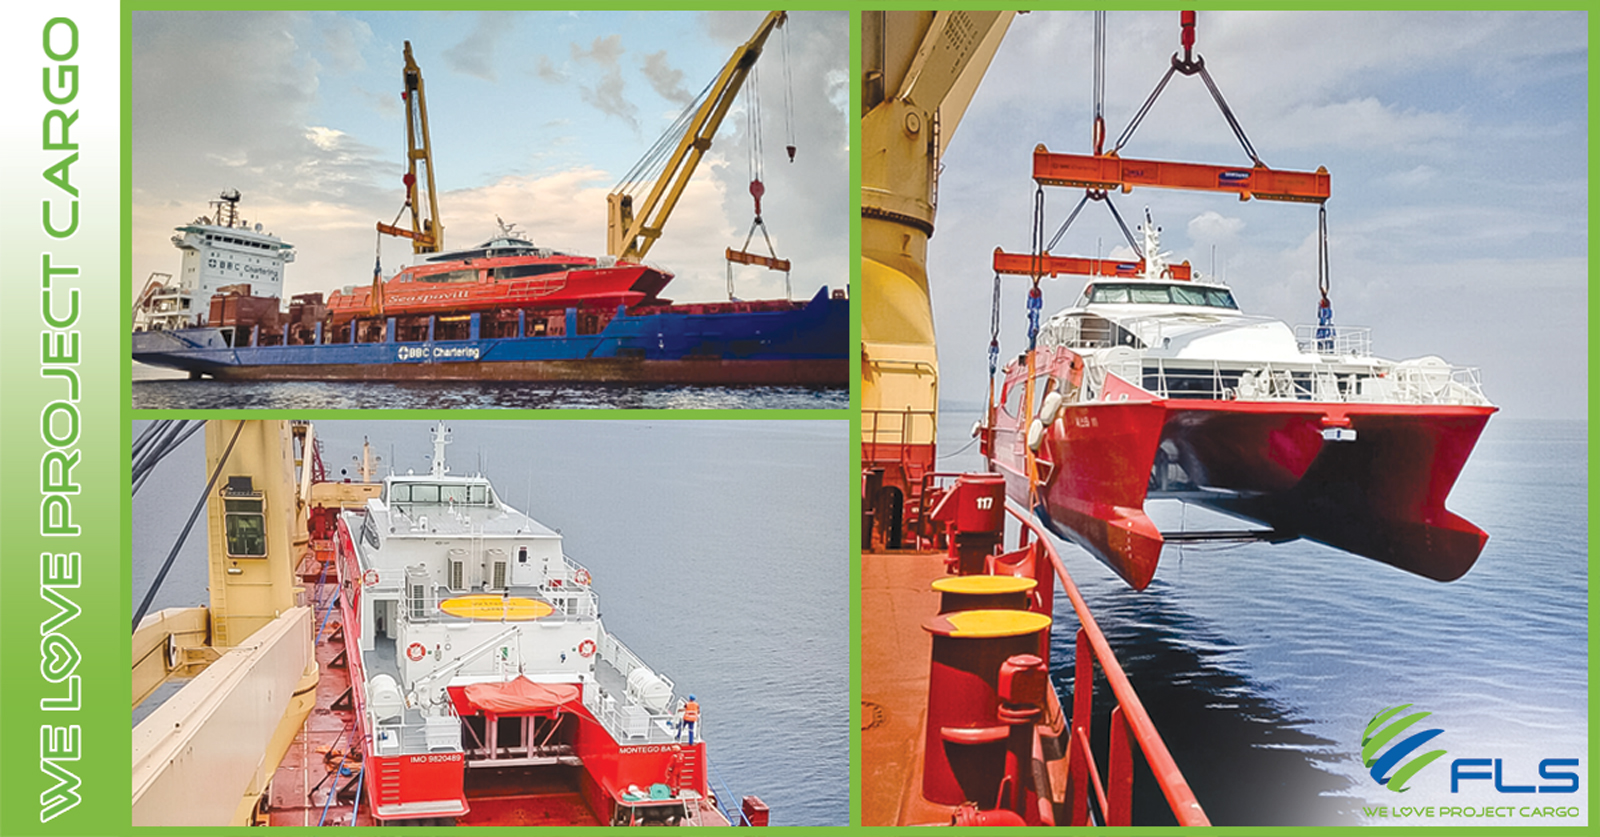 FLS Projects Vietnam - Worldwide Ship Delivery Professionals and Crew Boat Shipping Specialists!